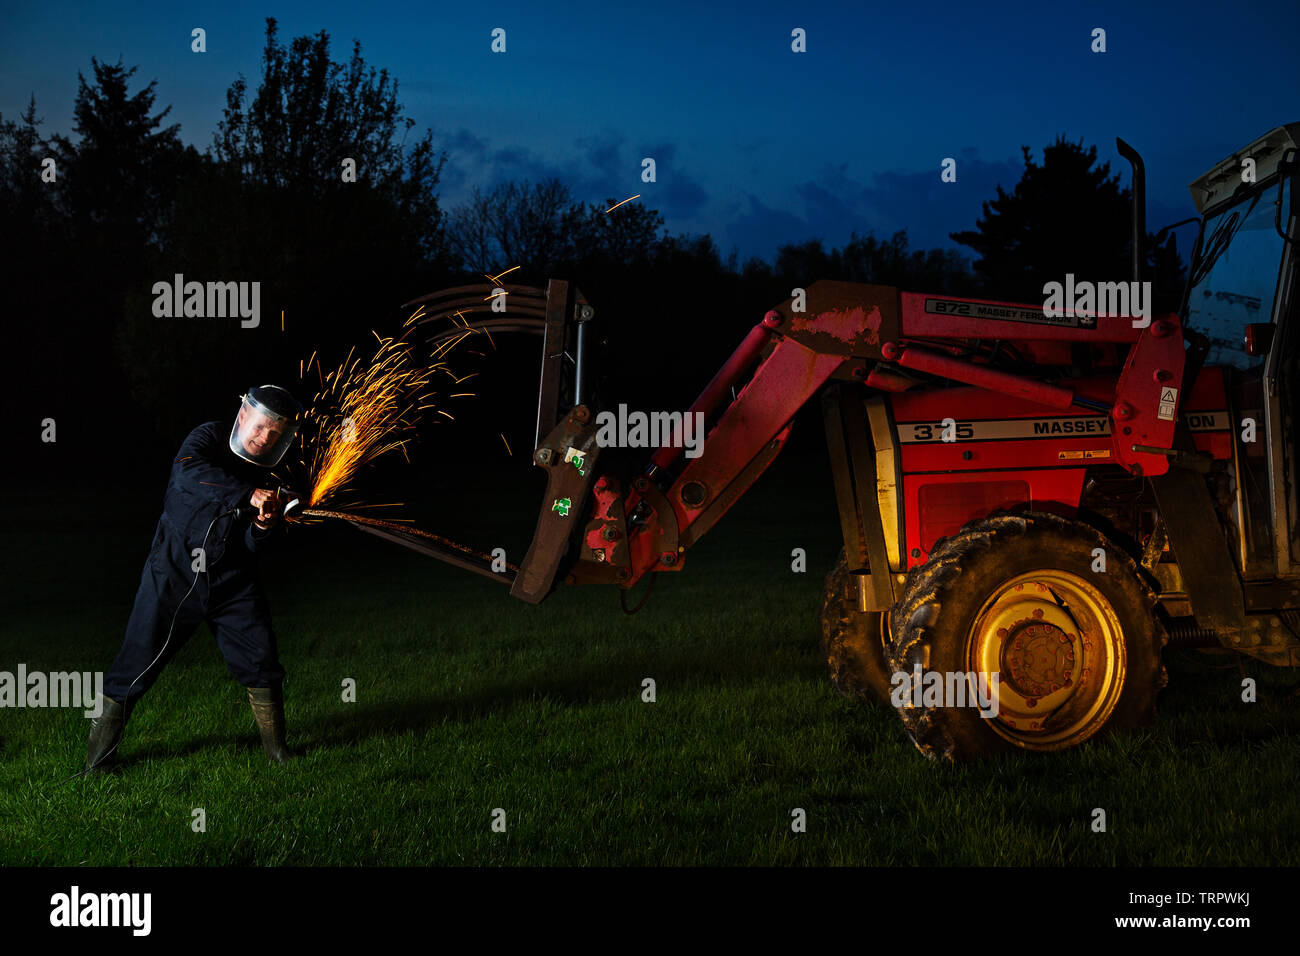 A farmer making repairs late into the night - Stock Image